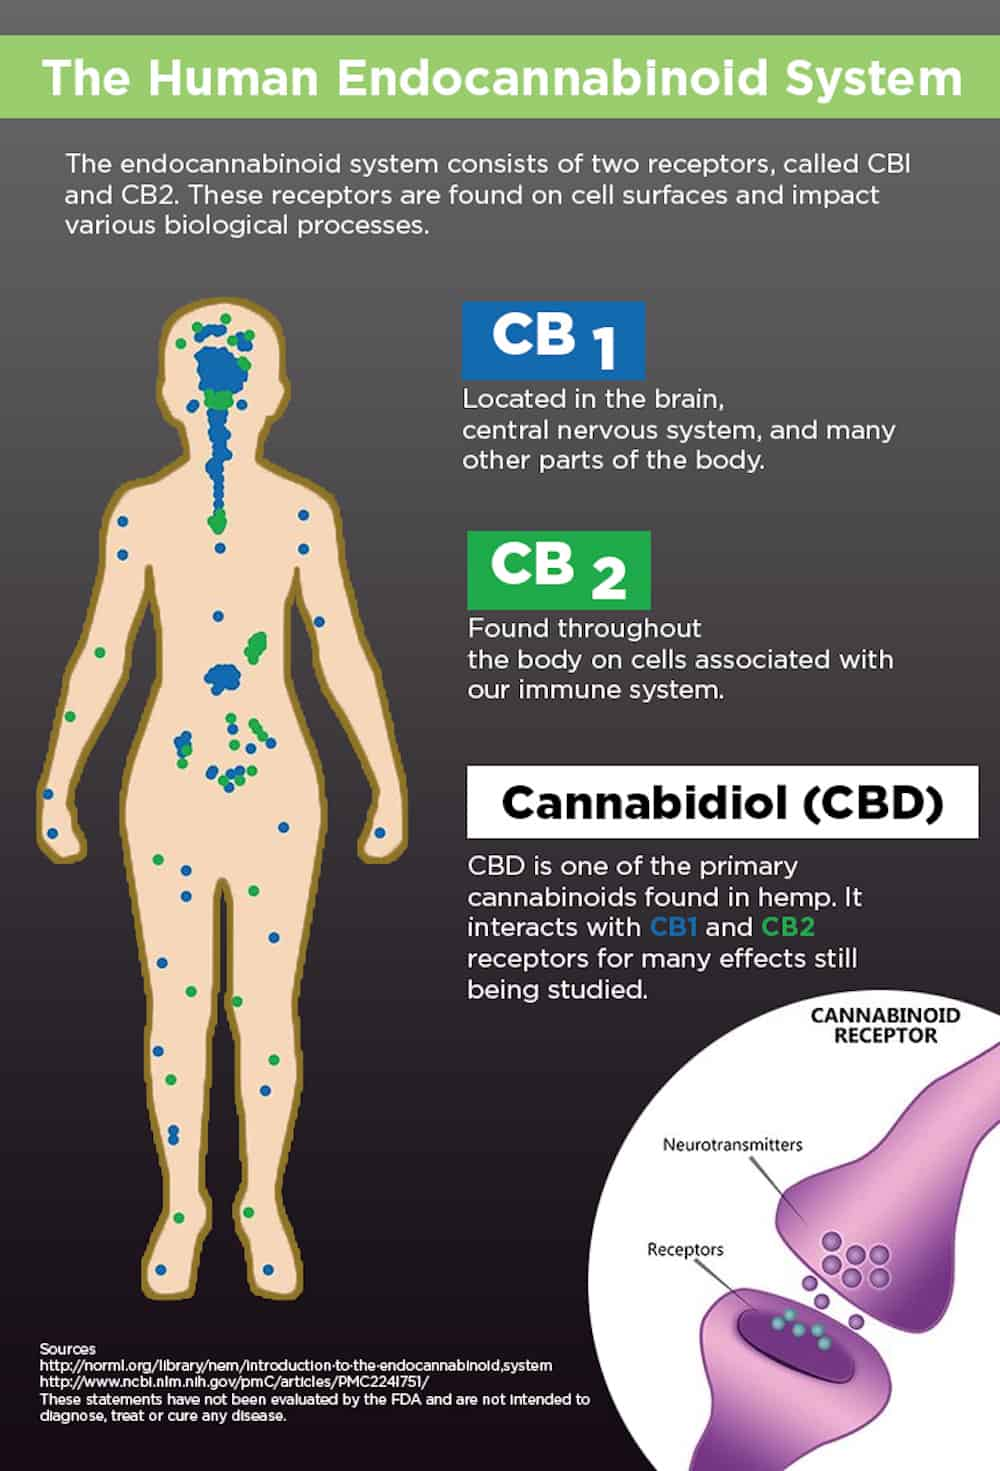 The Endocannabinoid System: What Nobody is Actively Discussing